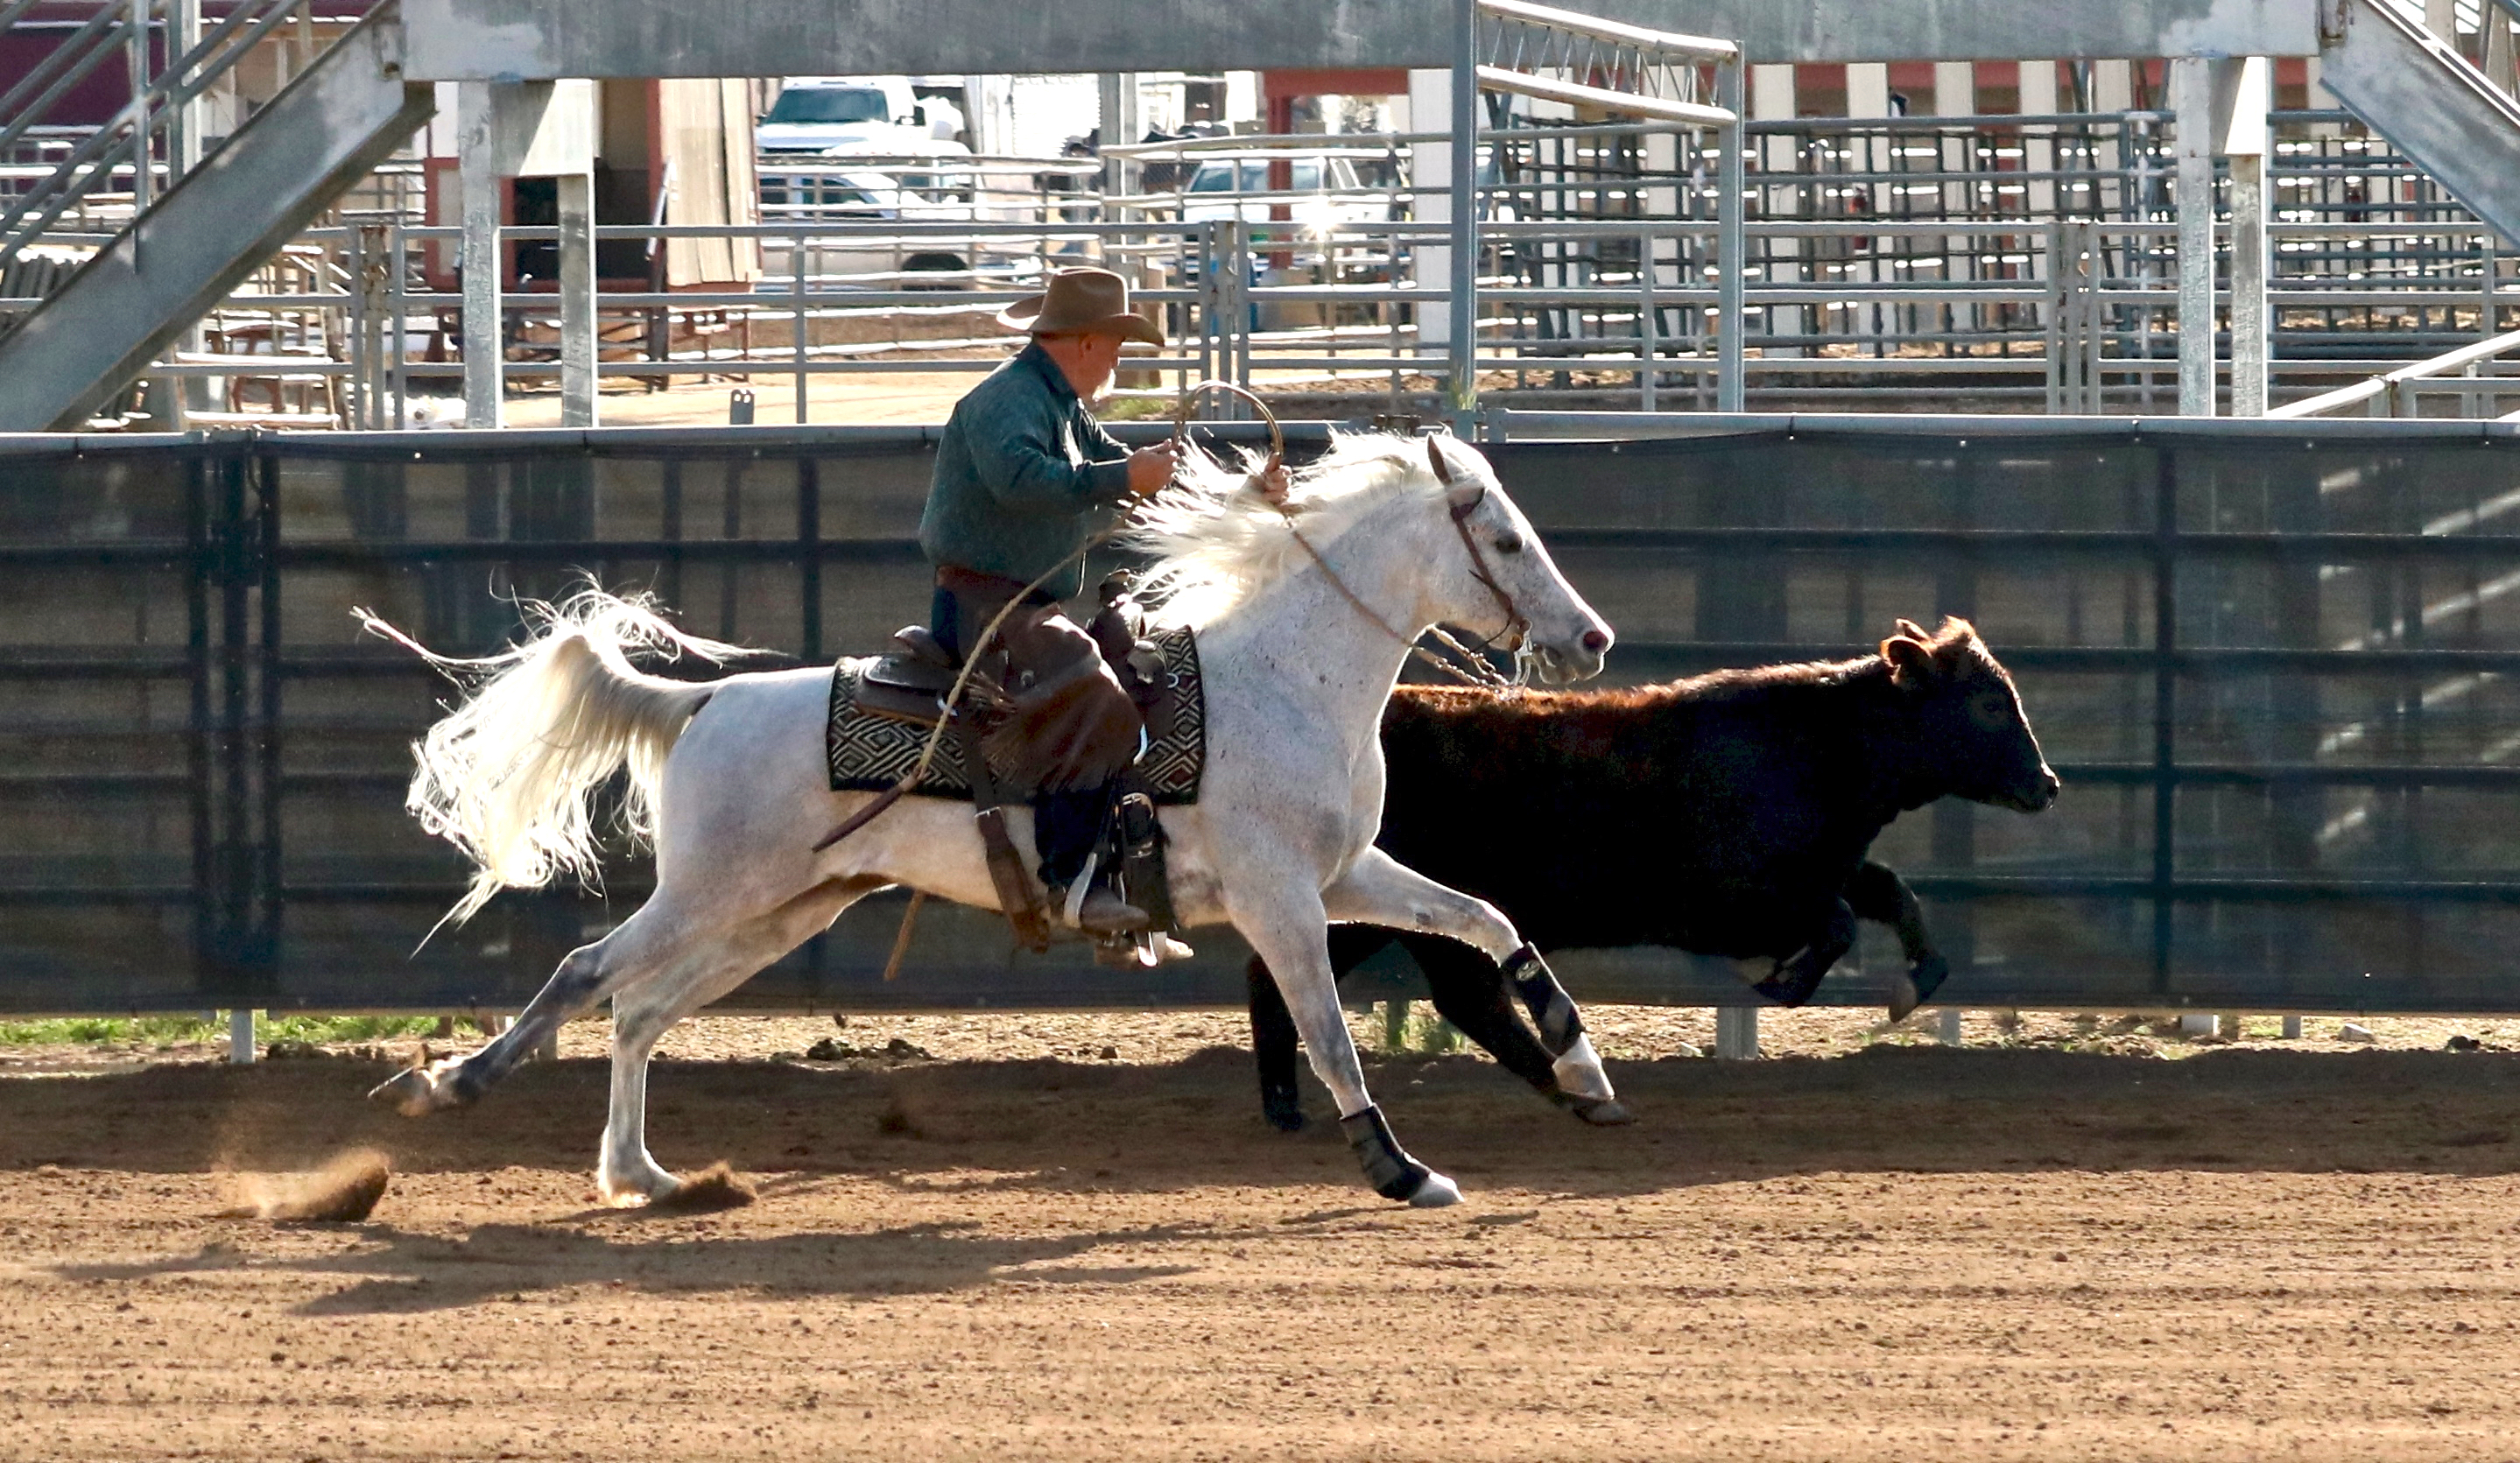 Working cow horse - Wikipedia